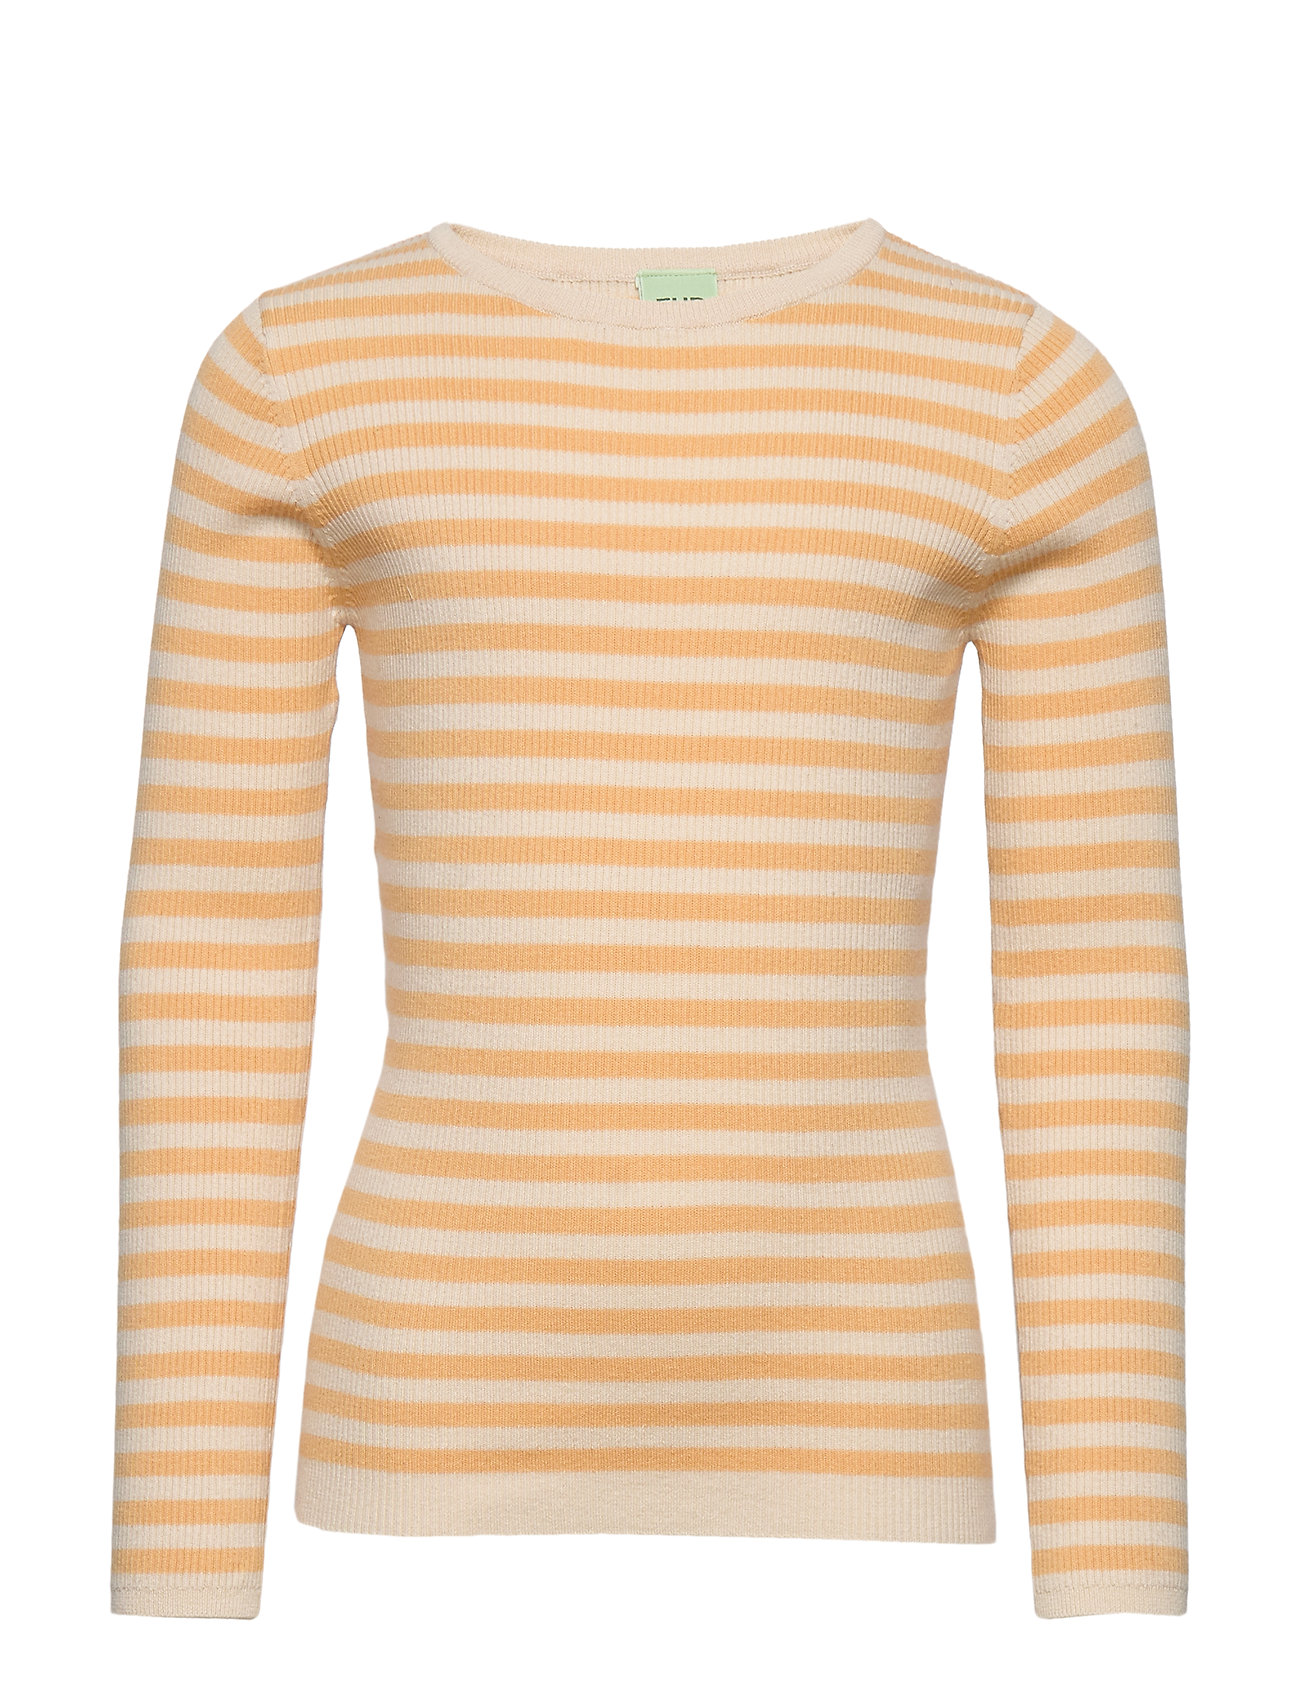 Image of Striped Rib Blouse Pullover Striktrøje Gul FUB (3356554757)